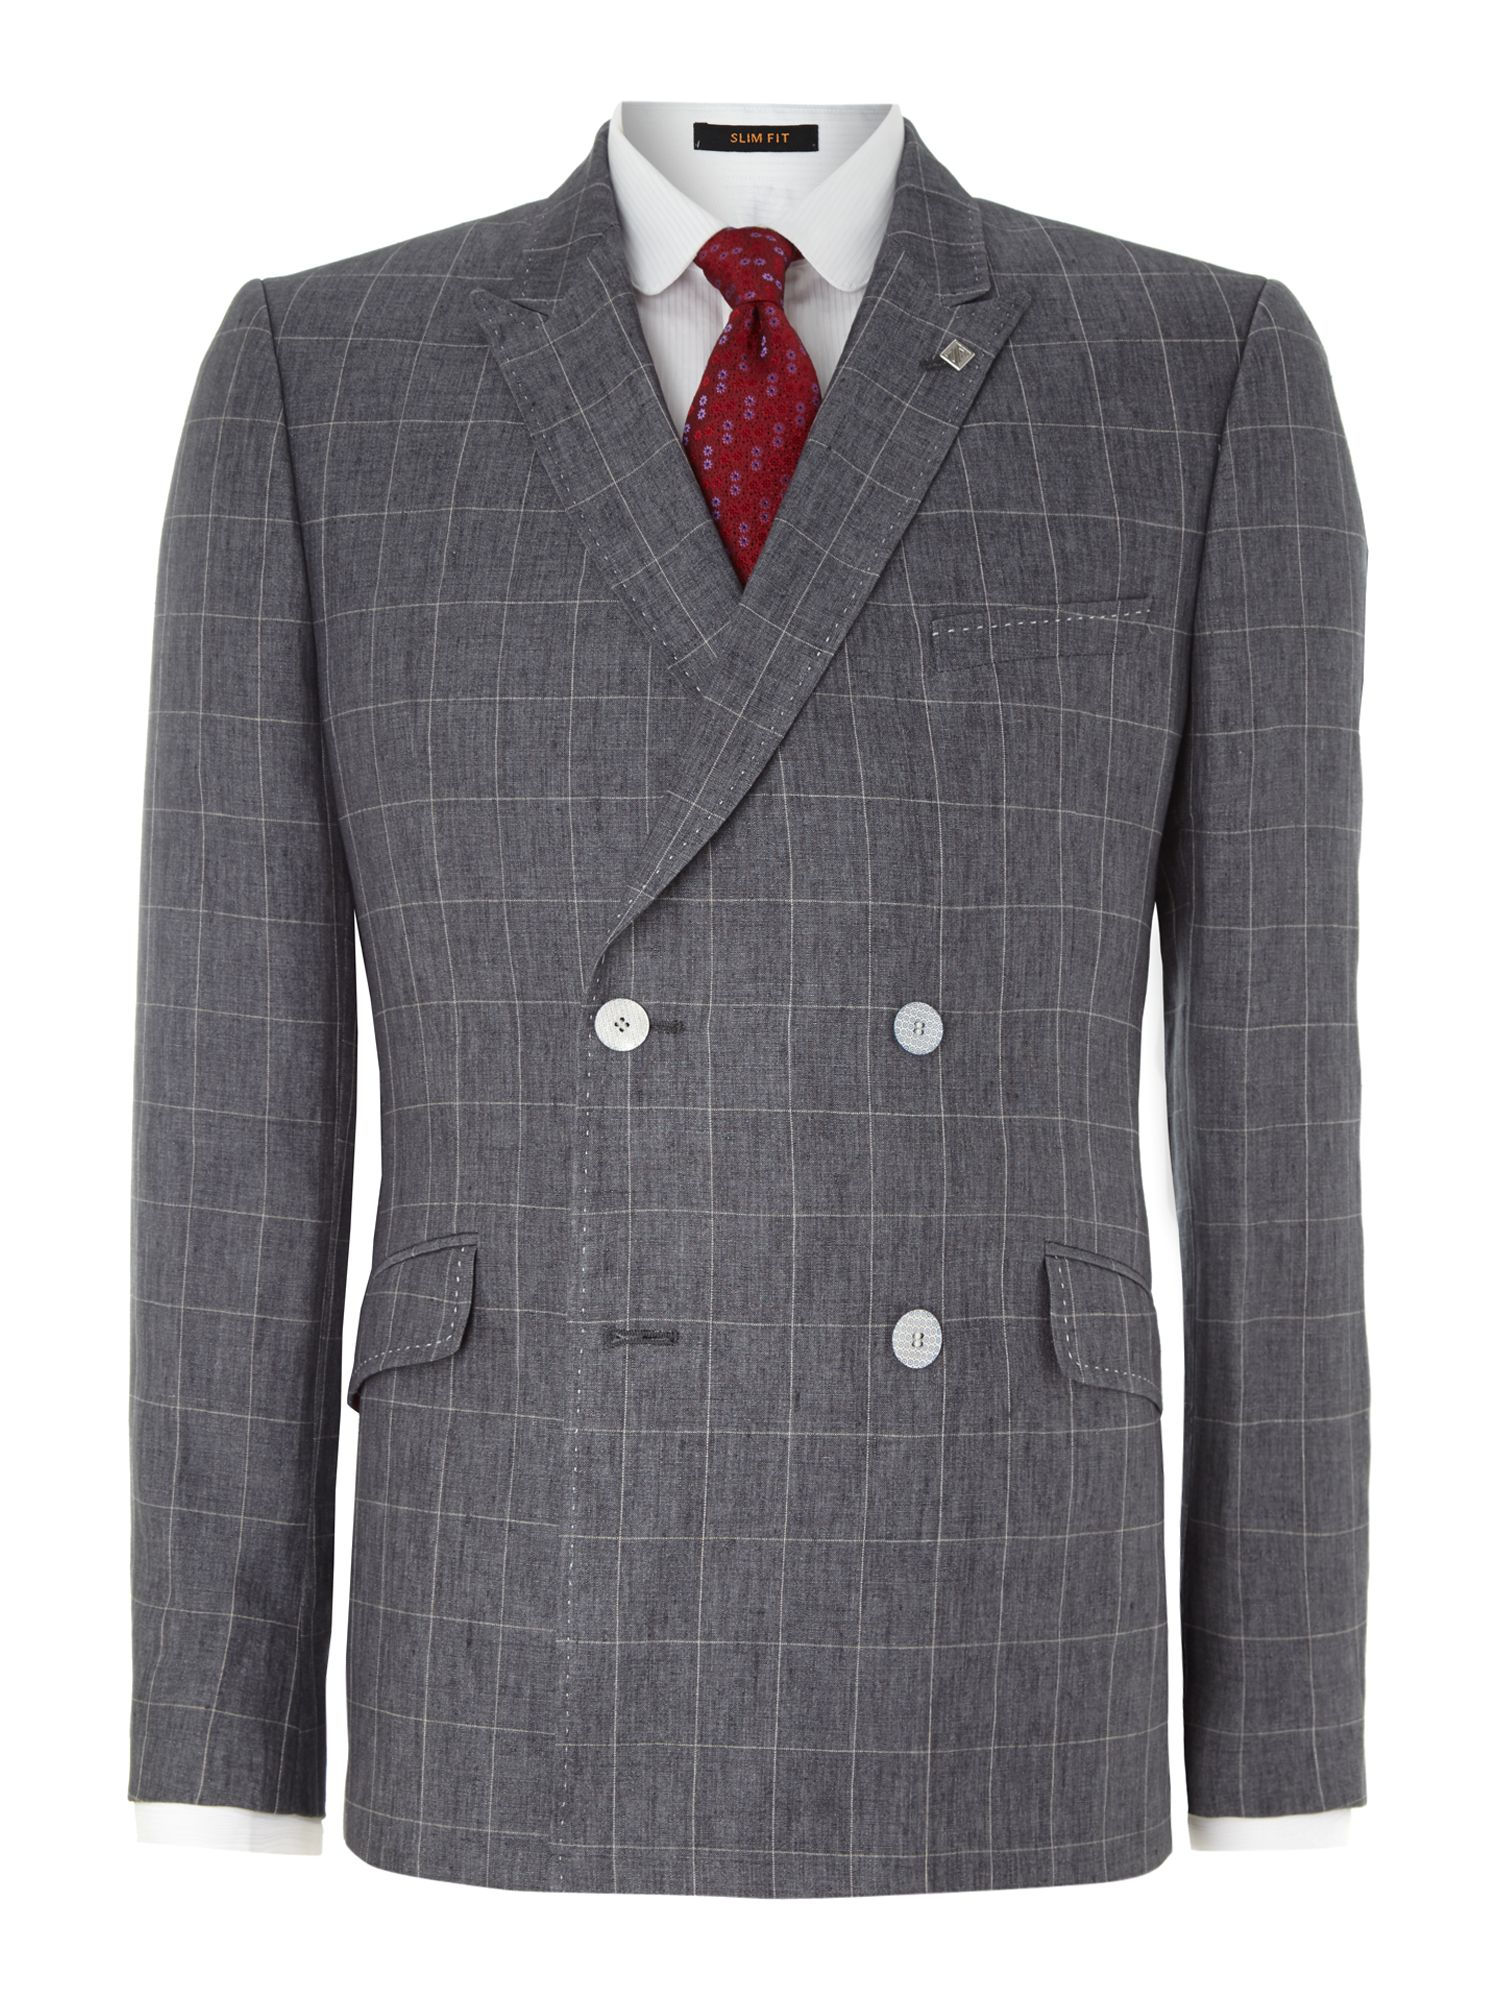 Pie slim fit double breasted check suit